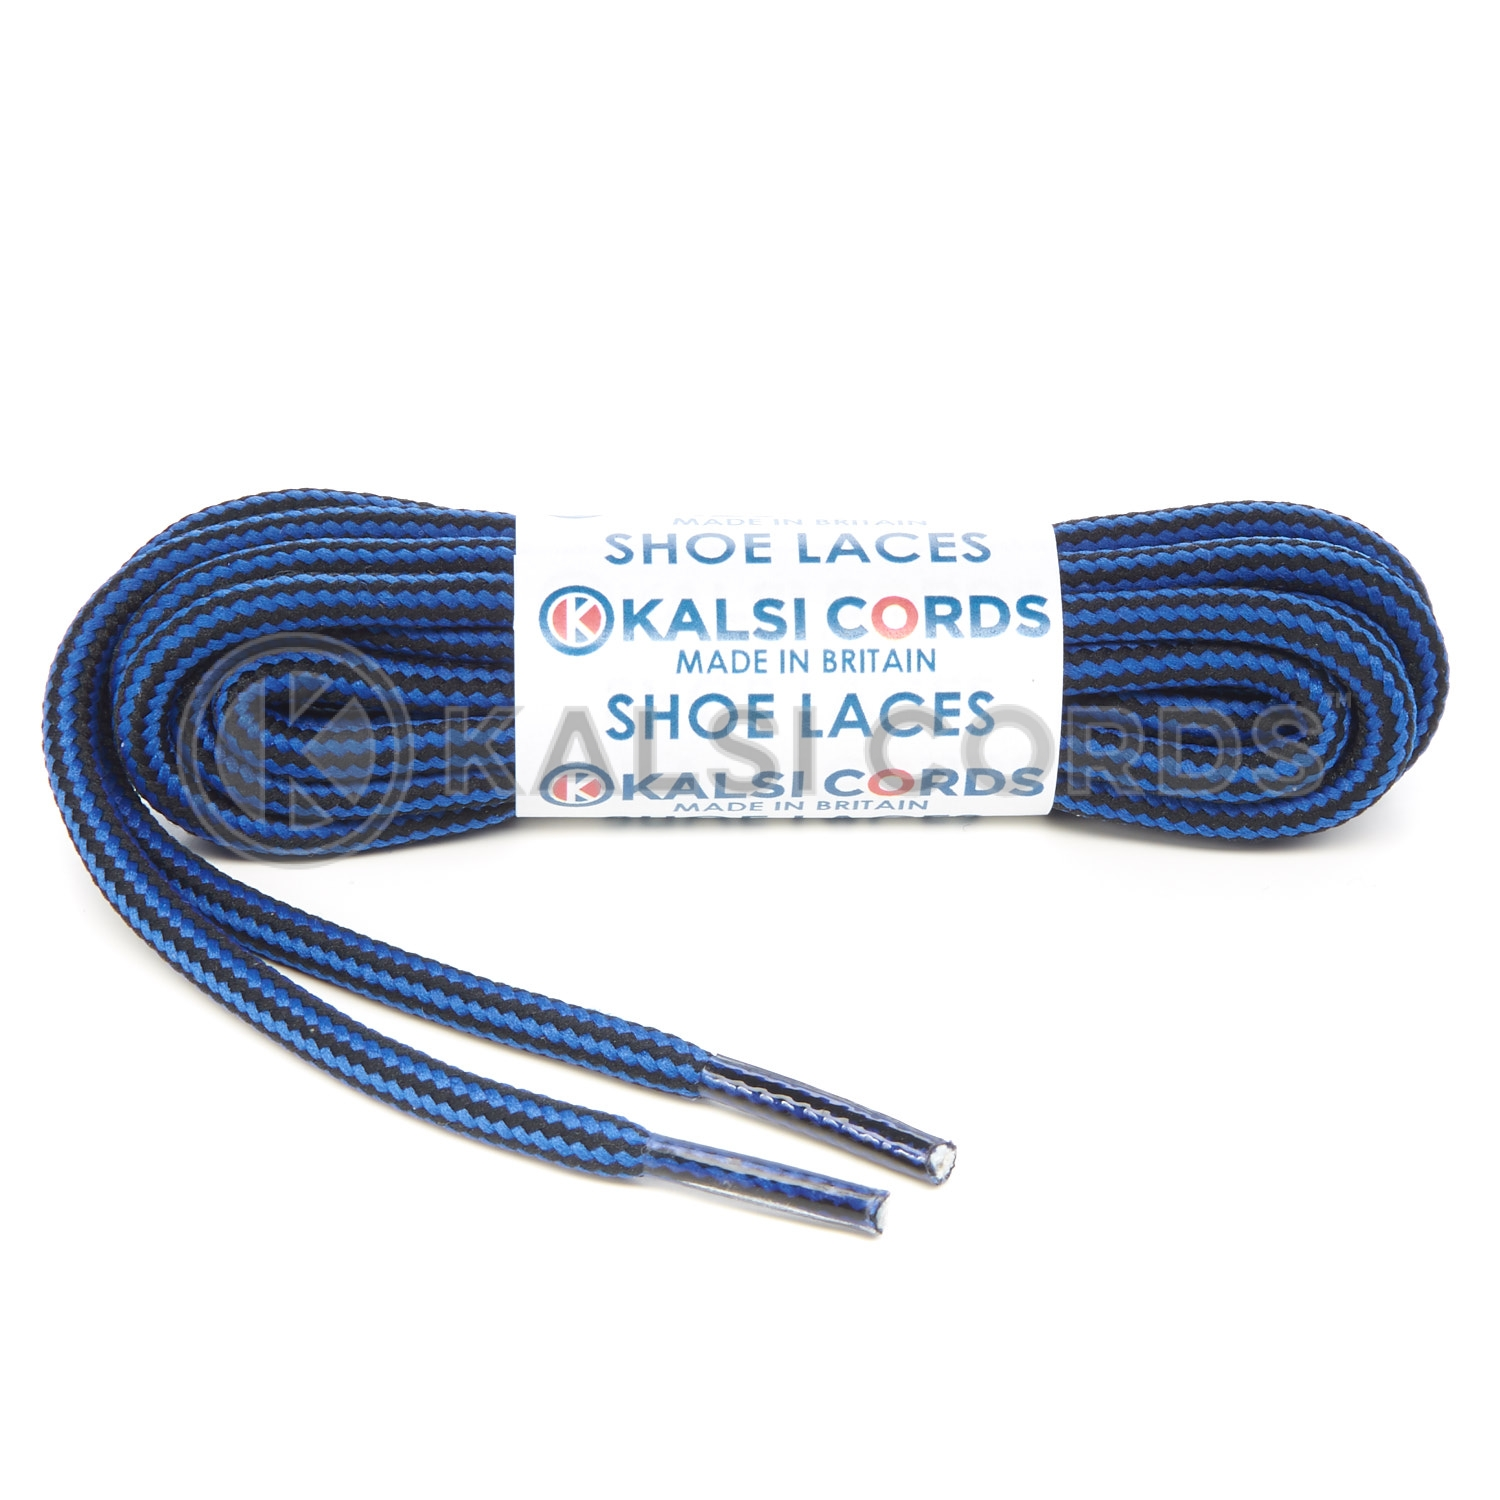 T621 5mm Round Cord Stripe Shoe Laces Royal Blue Black Kids Trainers Adults Hiking Walking Boots Kalsi Cords